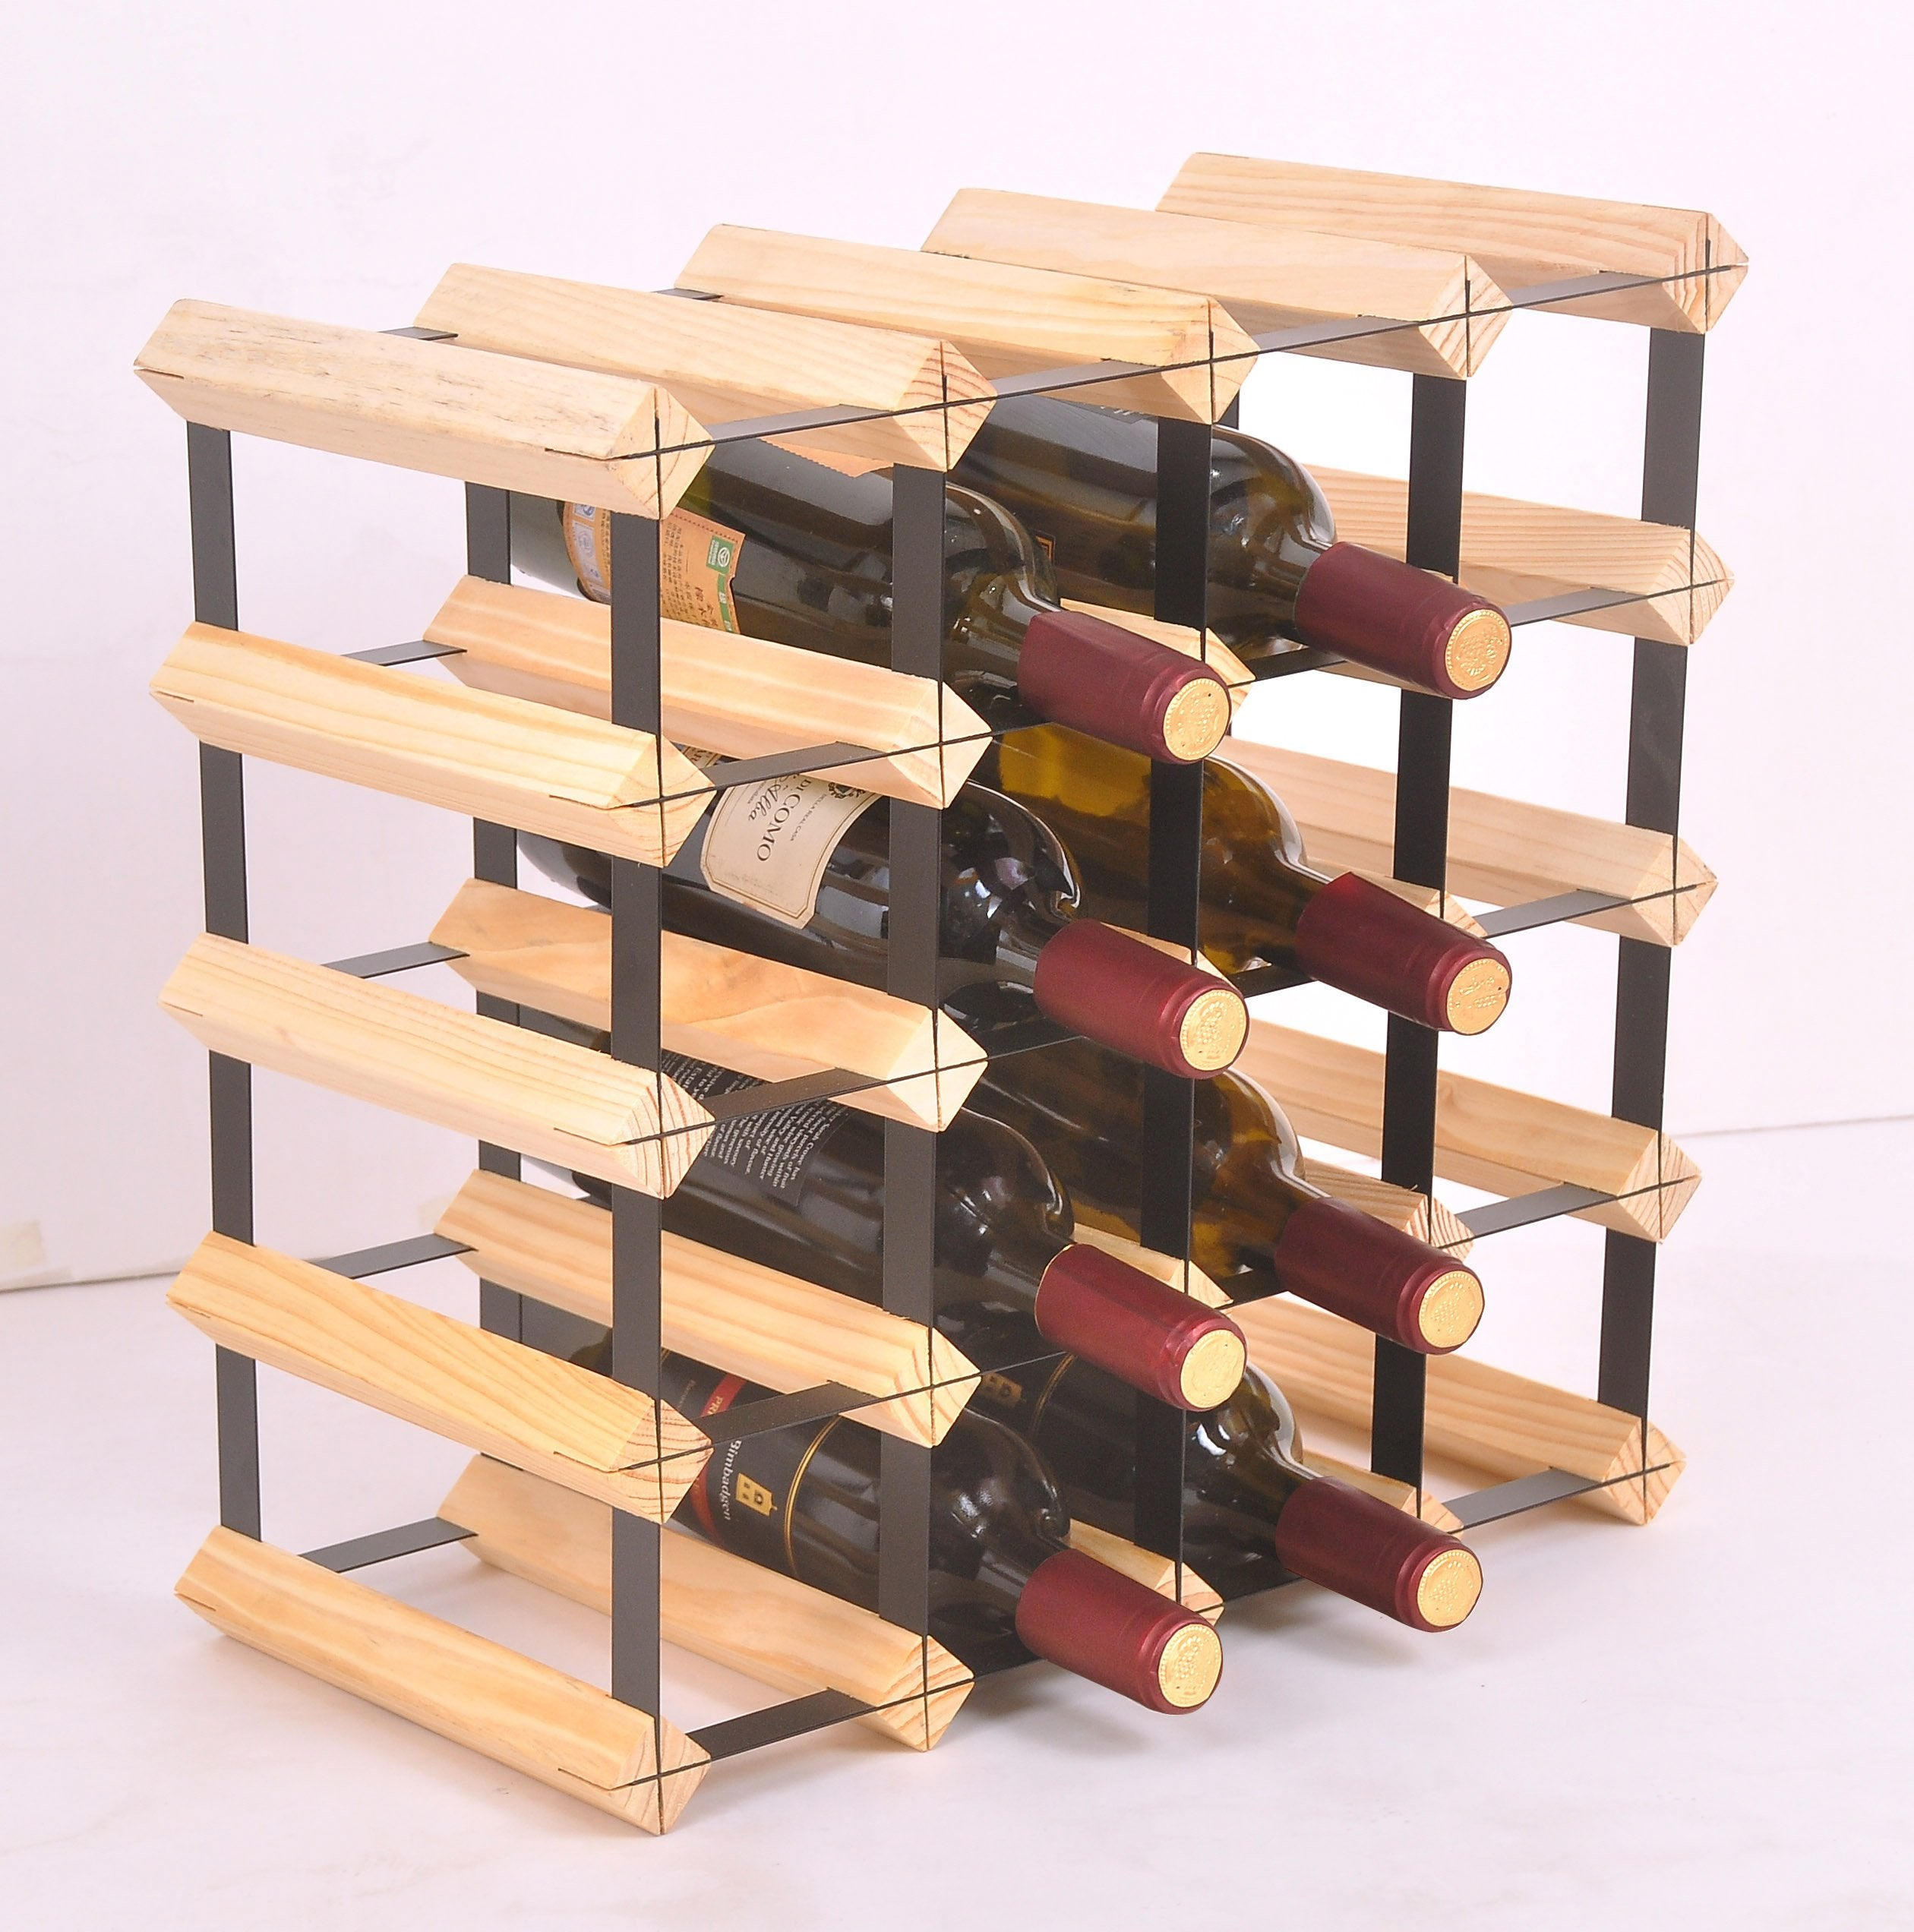 20 Bottle Timber Wine Rack - Complete Wooden Wine Storage System